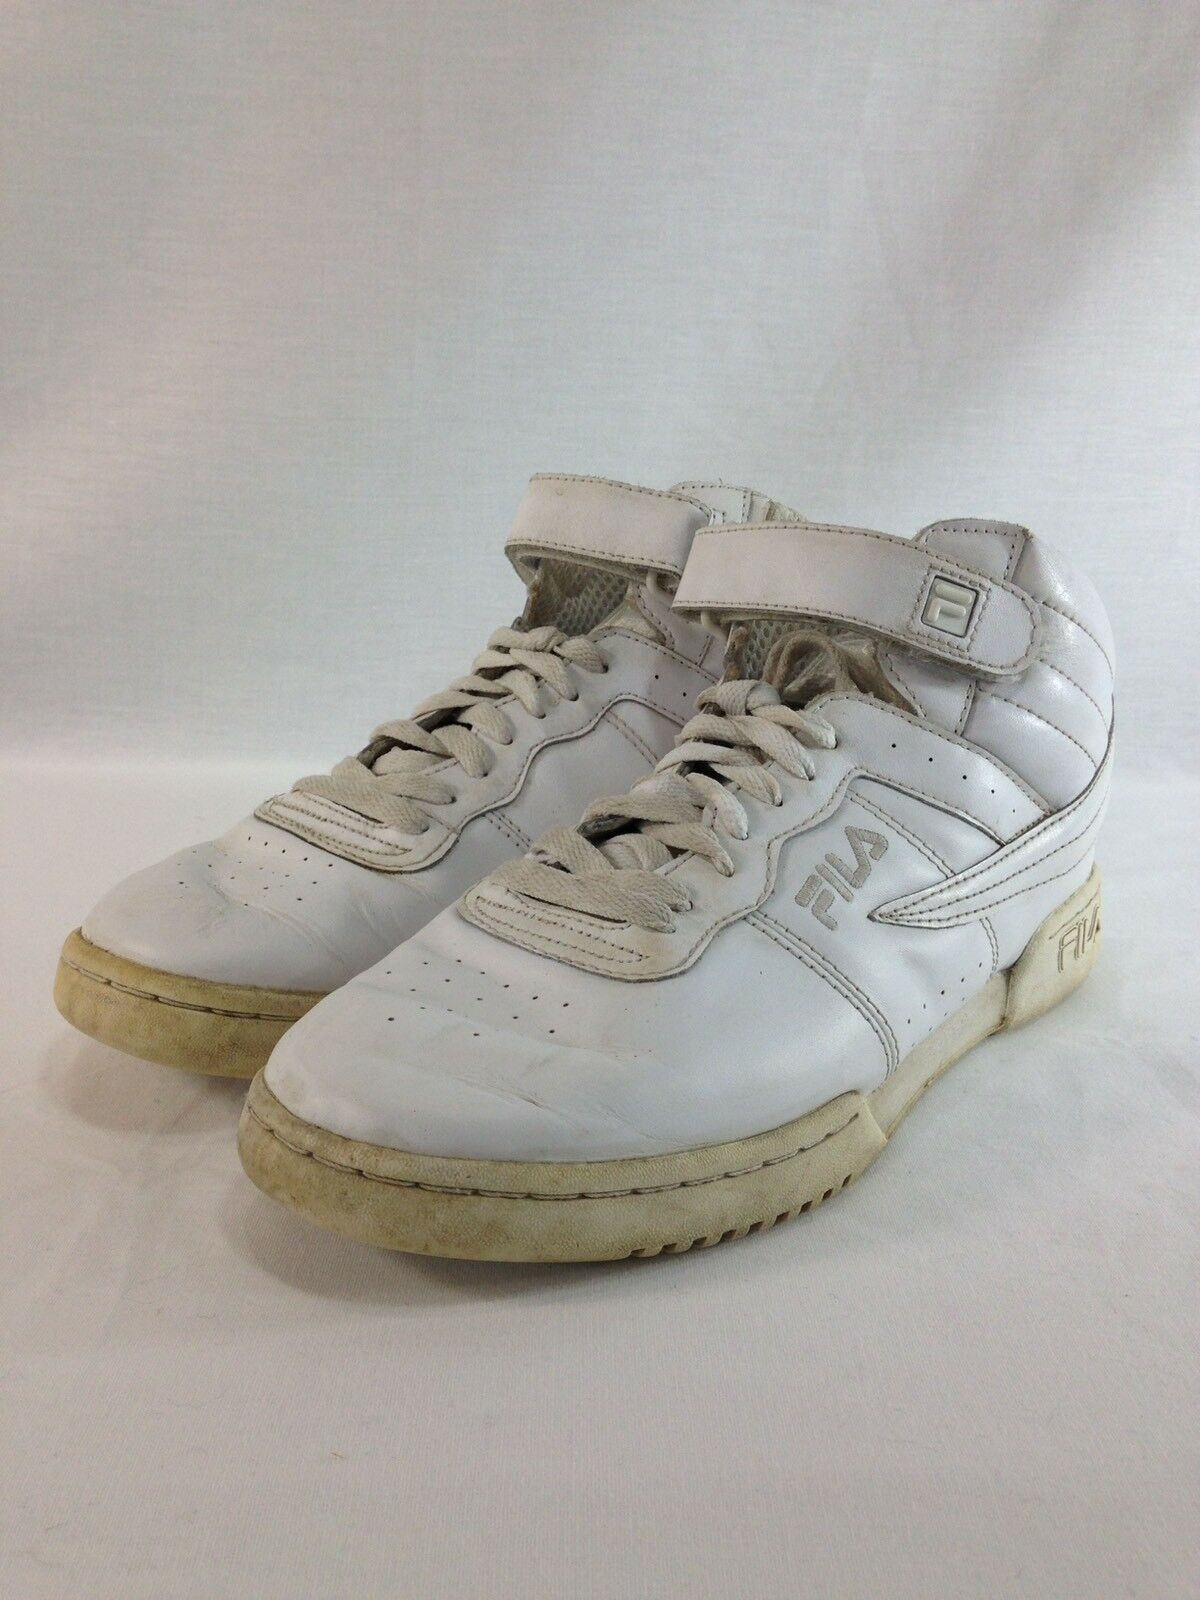 VTG Fila Sneakers shoes Mens 9.5 White Leather High Top Basketball Athletic